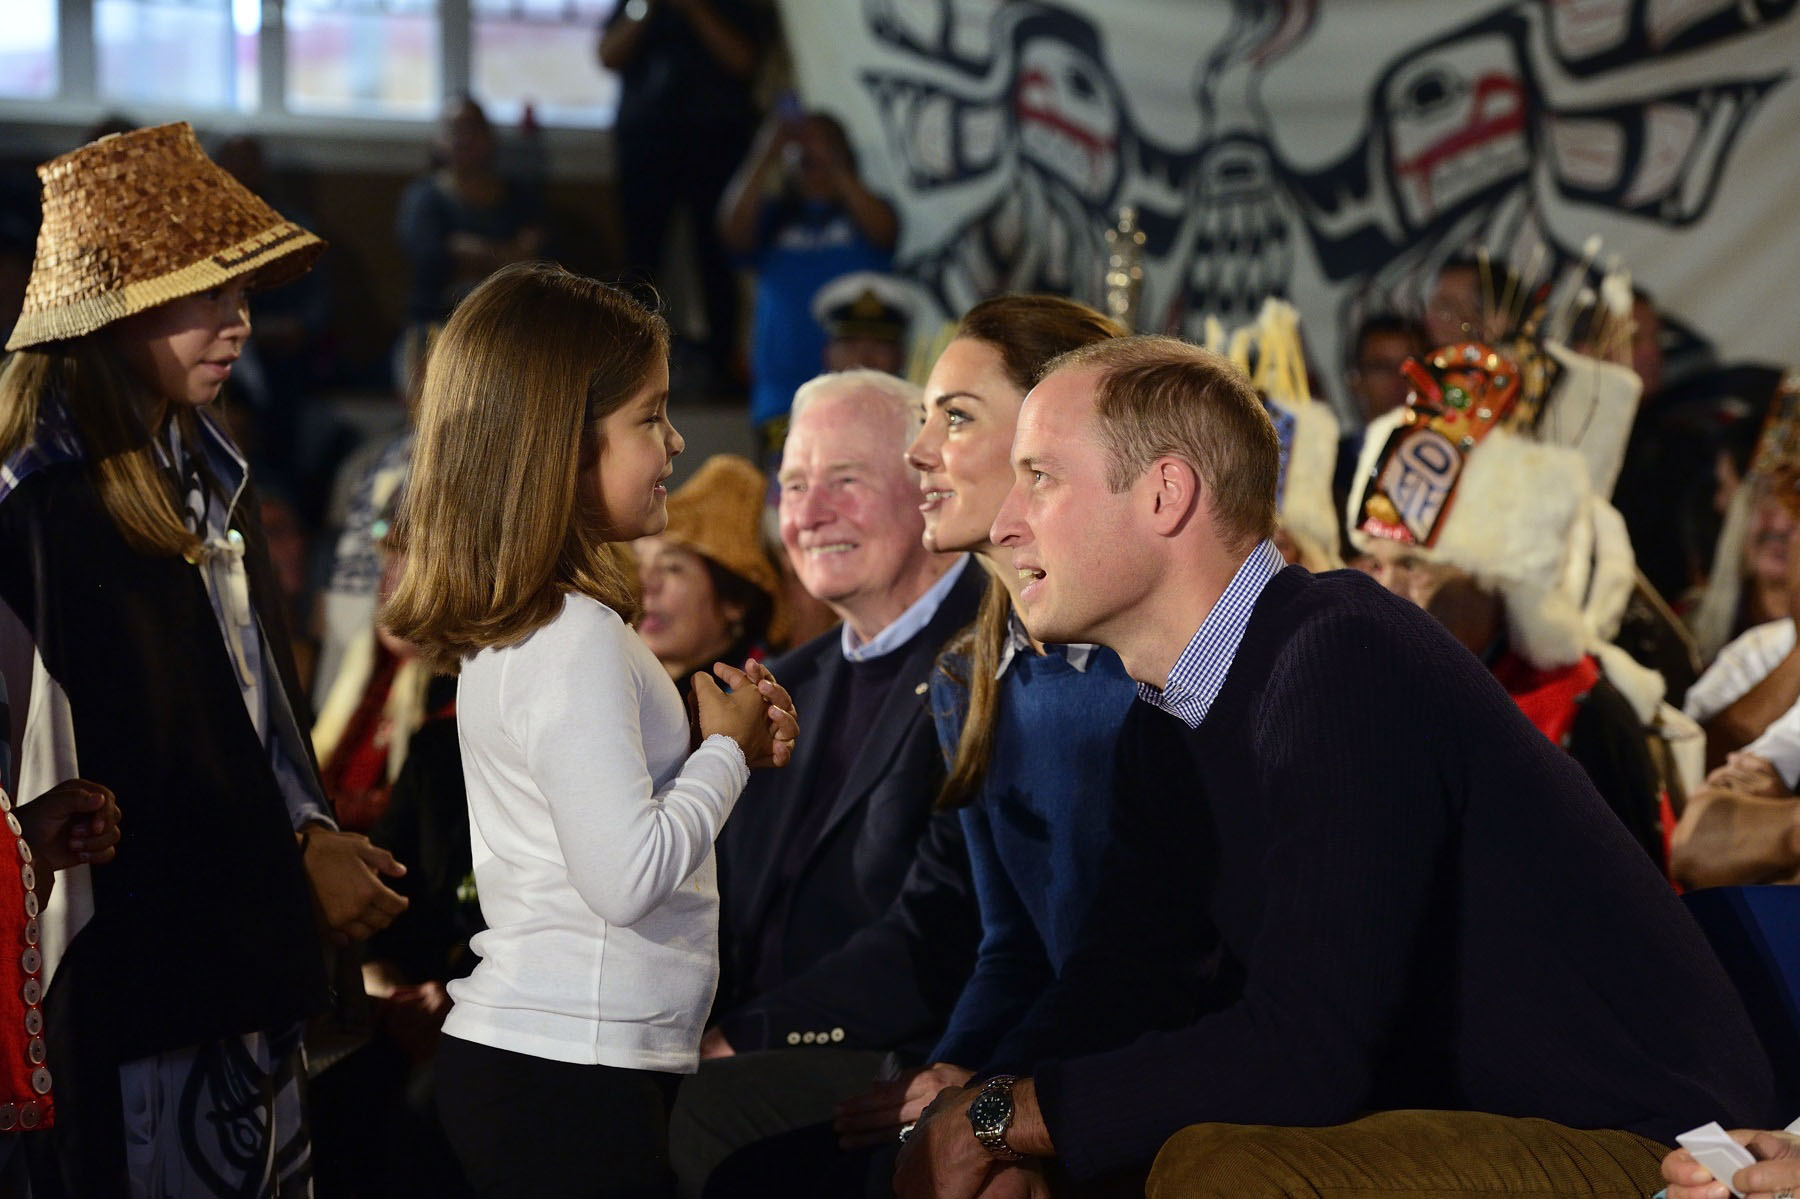 Their Royal Highnesses met youth from the Heiltsuk community.